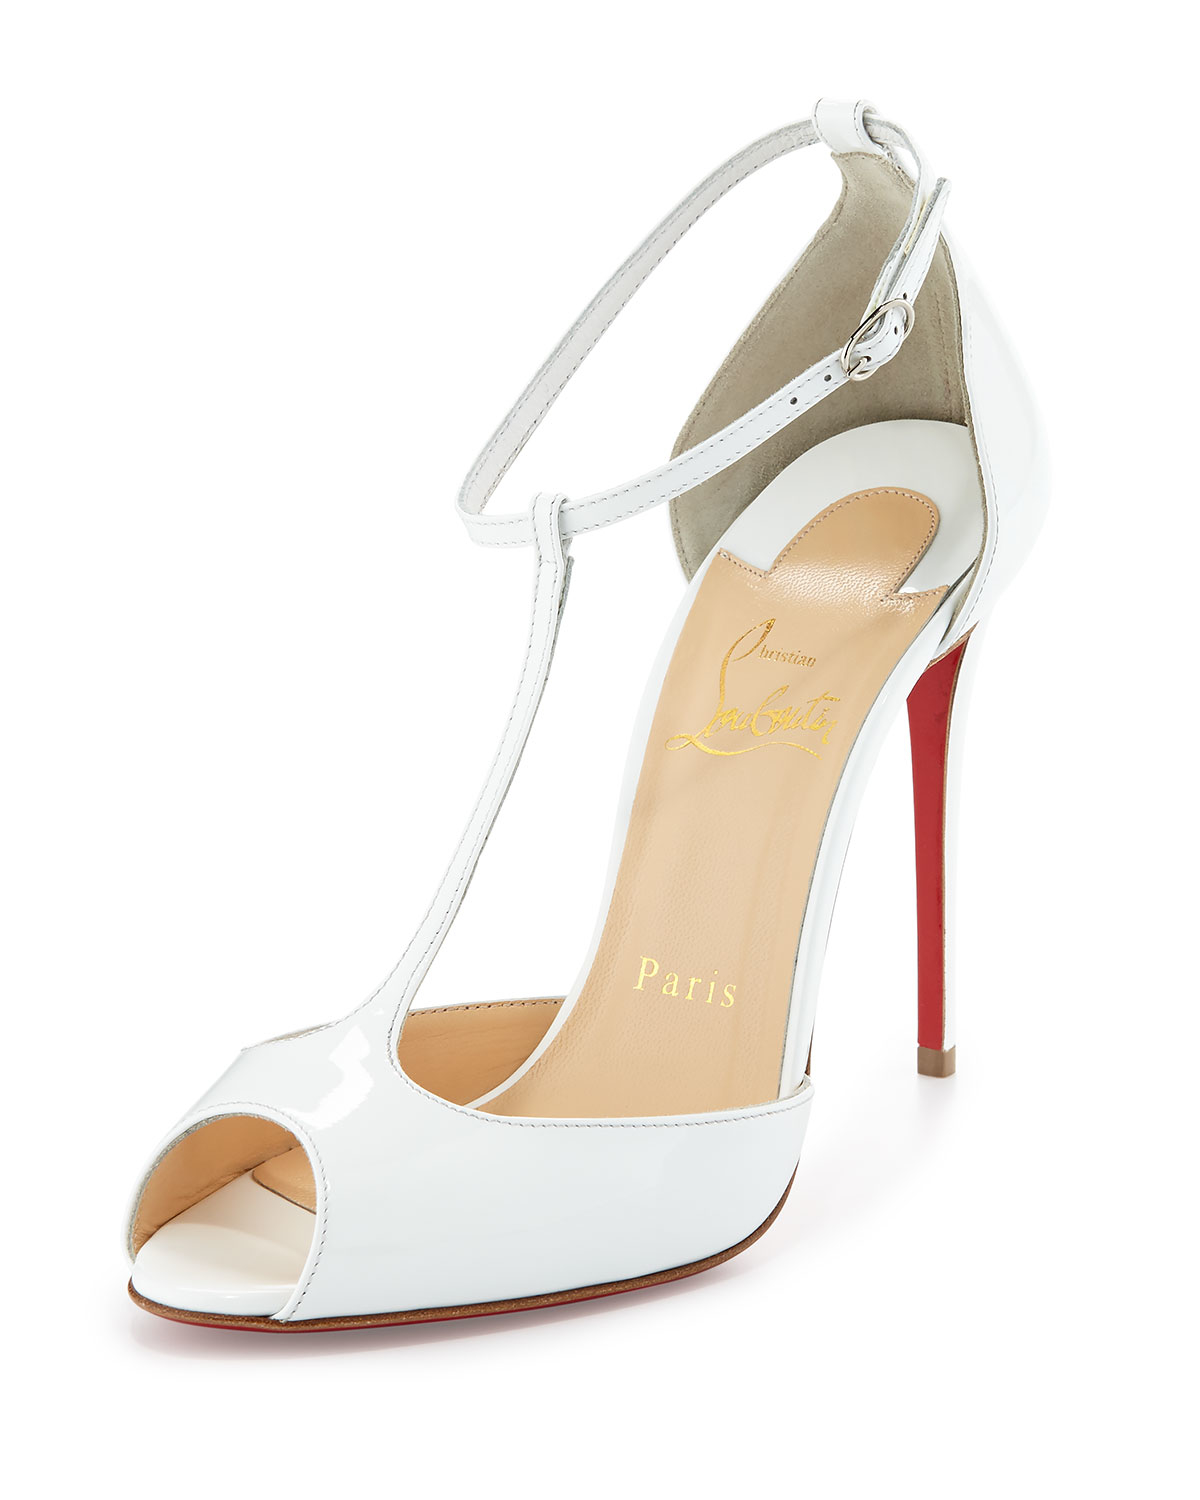 2b6023020cd Gallery. Previously sold at  Bergdorf Goodman · Women s Christian Louboutin  Senora ...